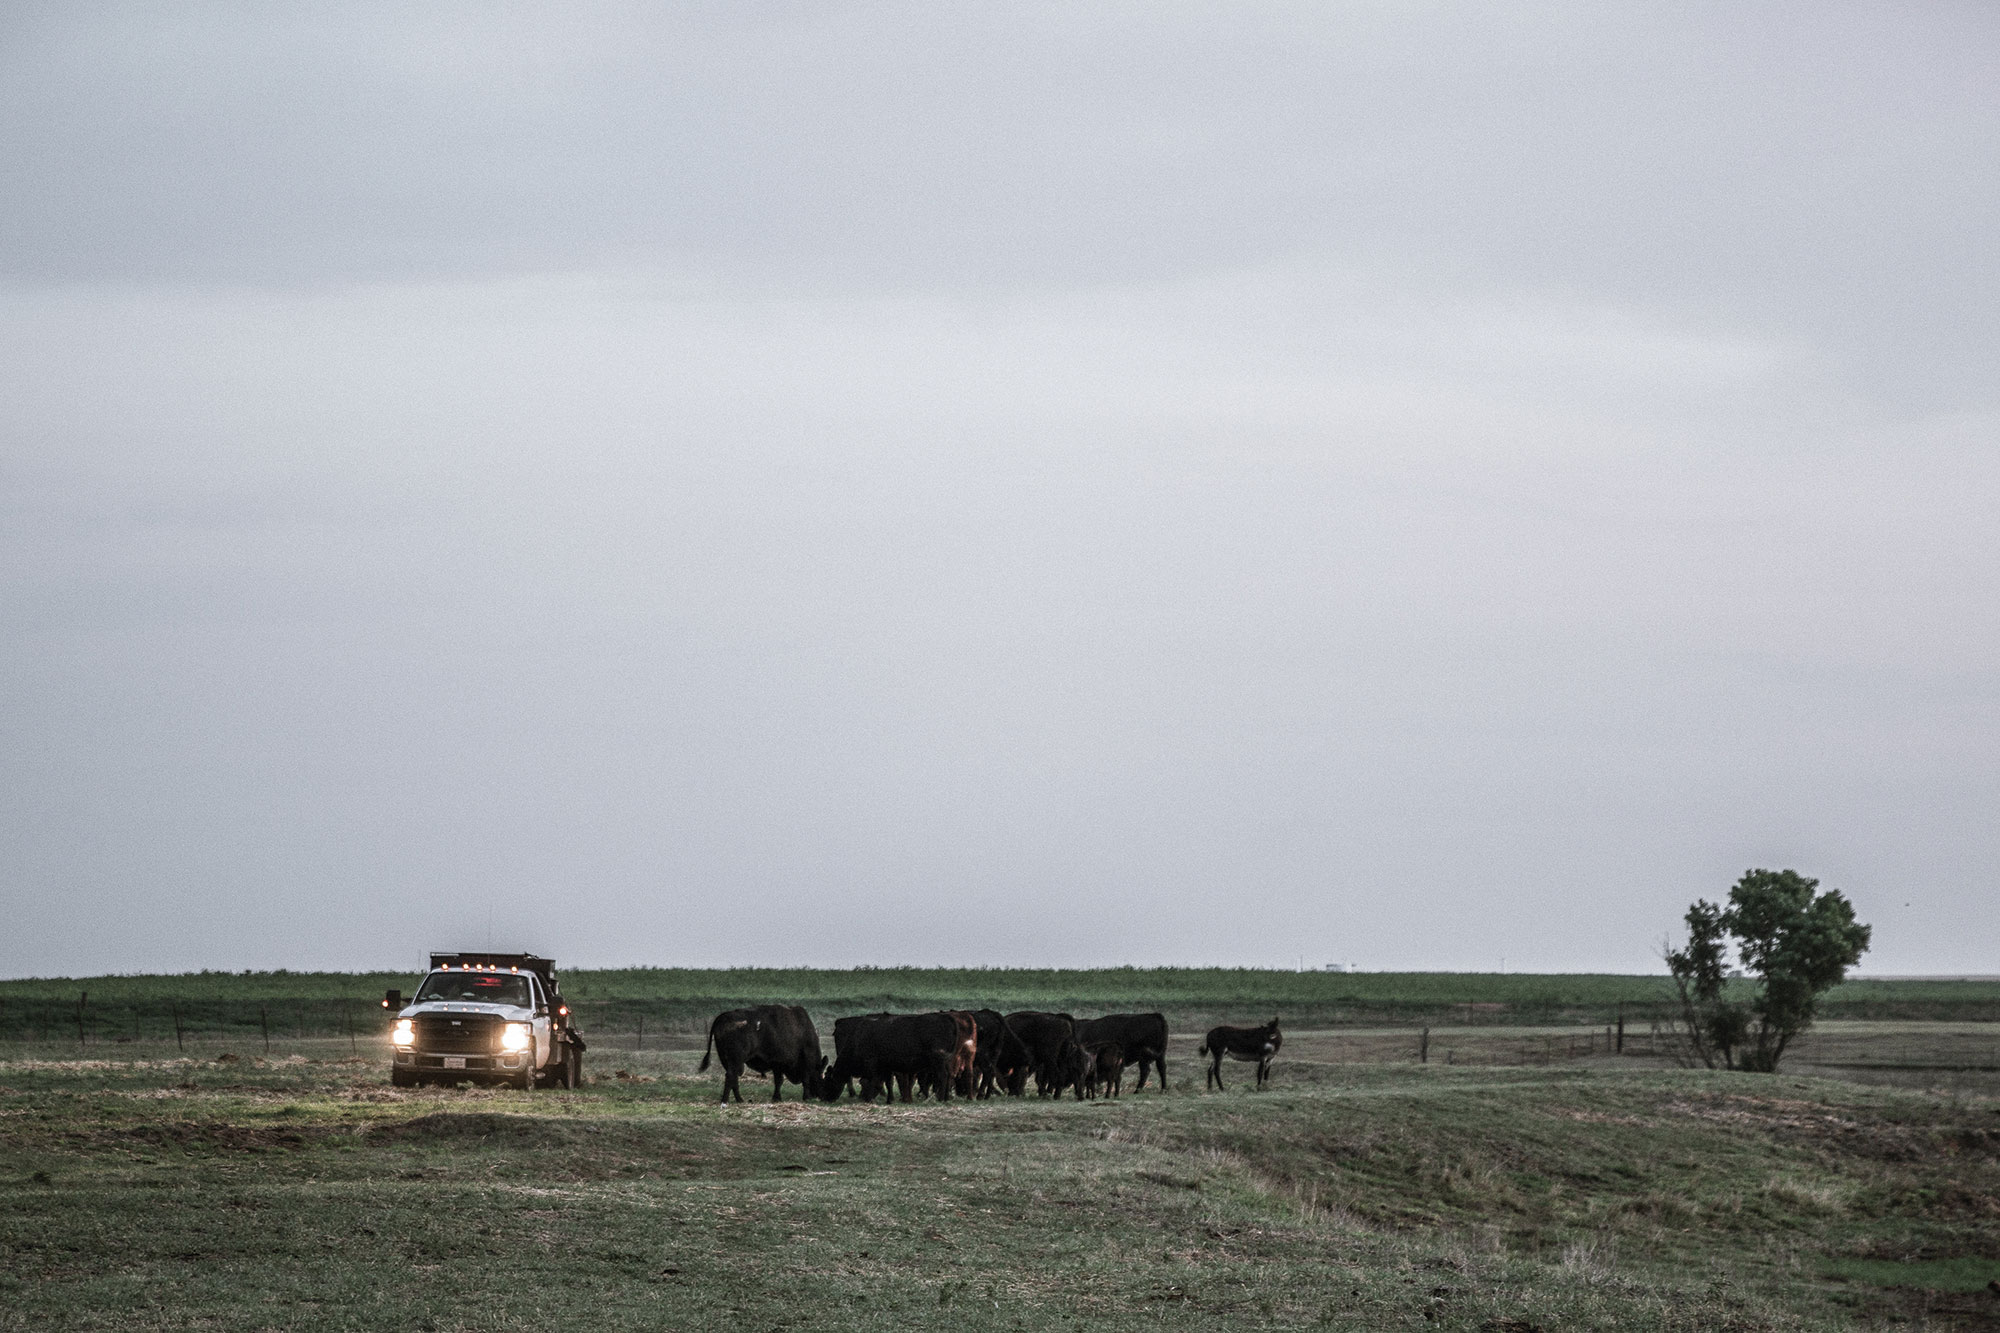 Jimmy Emmons drives his truck through the pasture to check on his cattle.